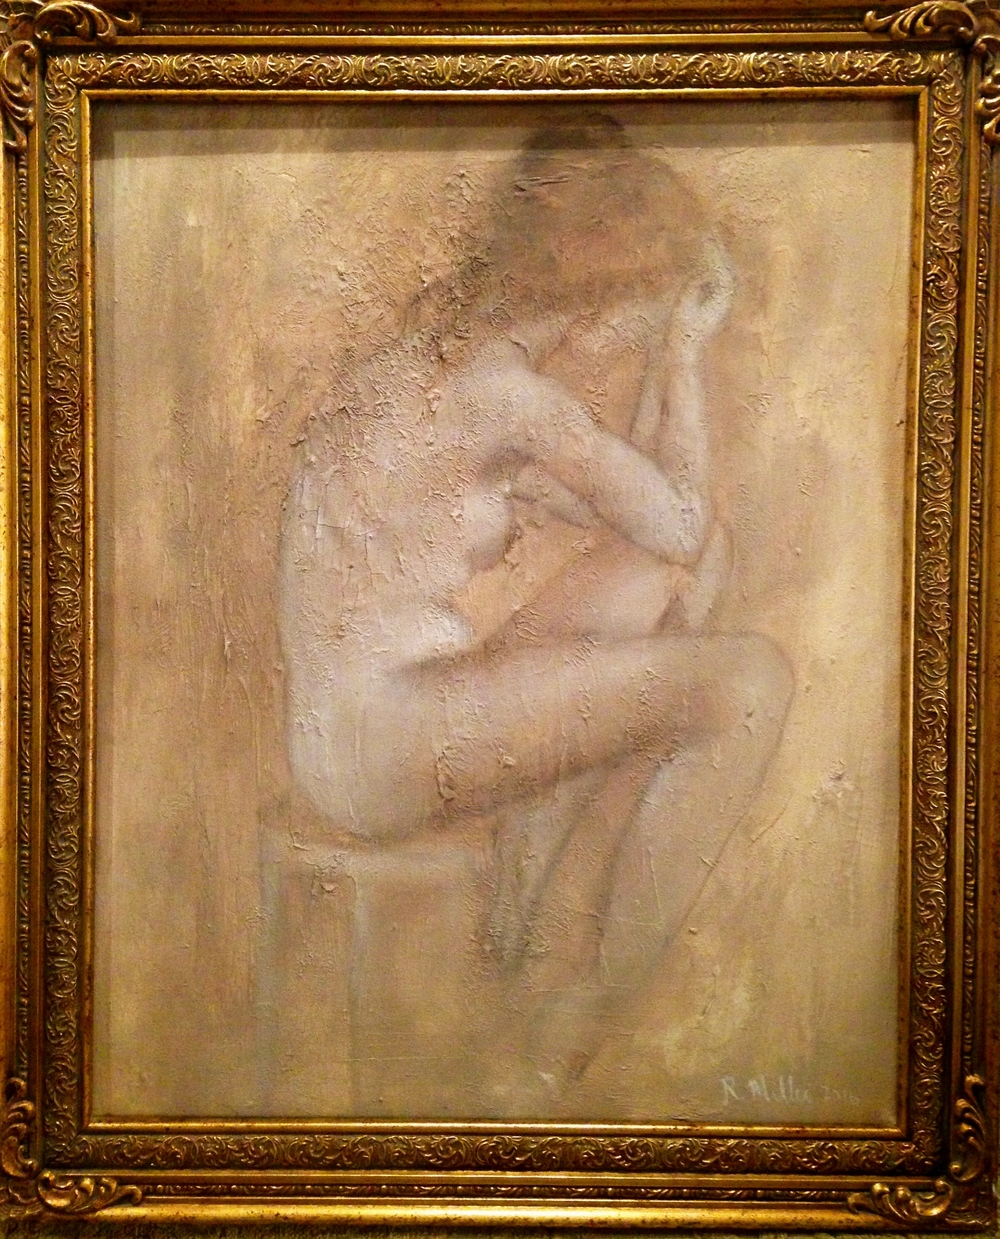 (framed)La Penseuse, 2016   Mixed media on canvas